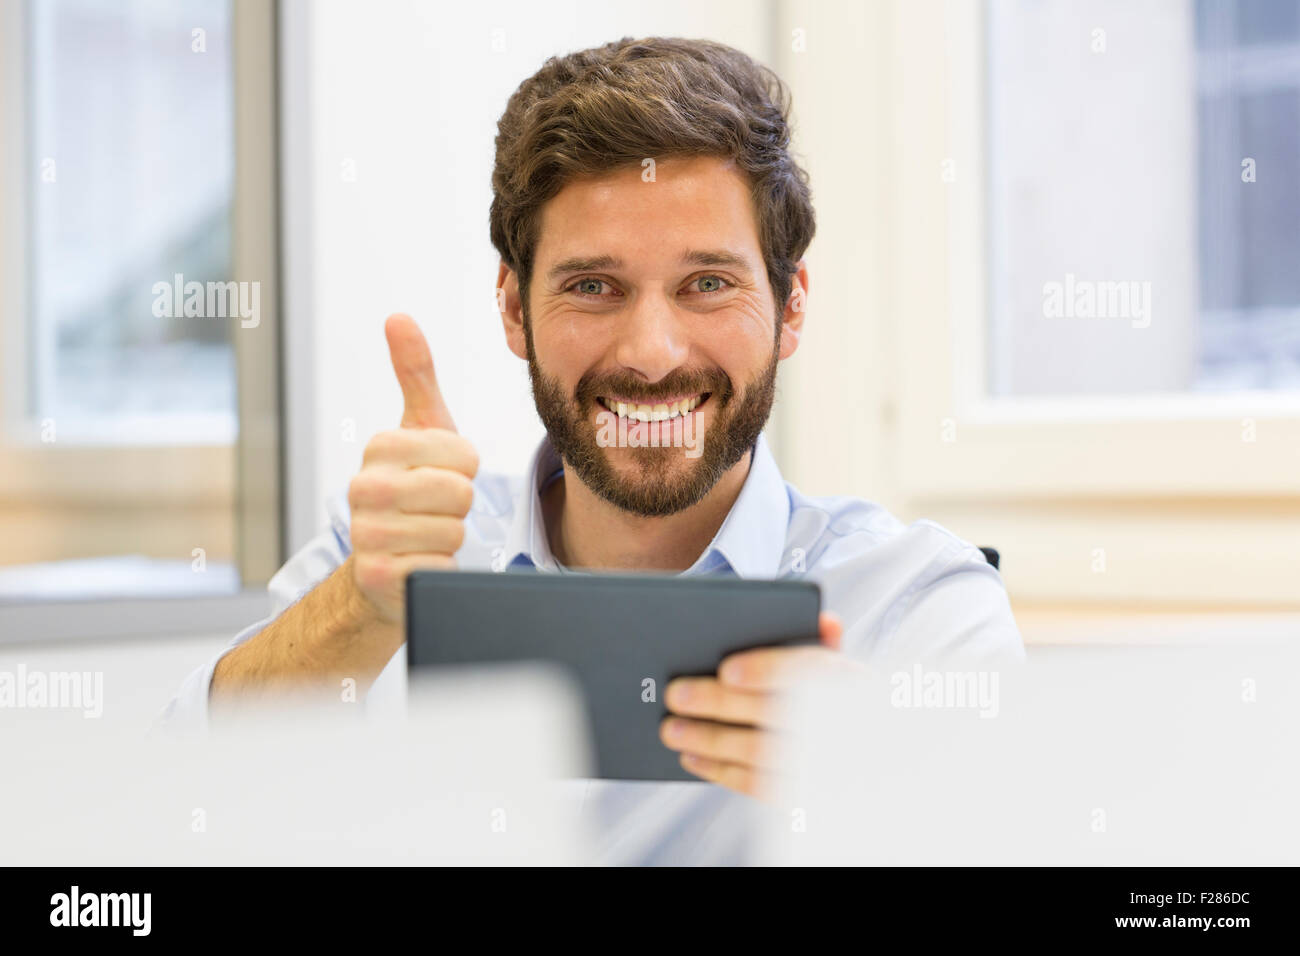 Happy businessman with thumb up in office using digital tablet Banque D'Images